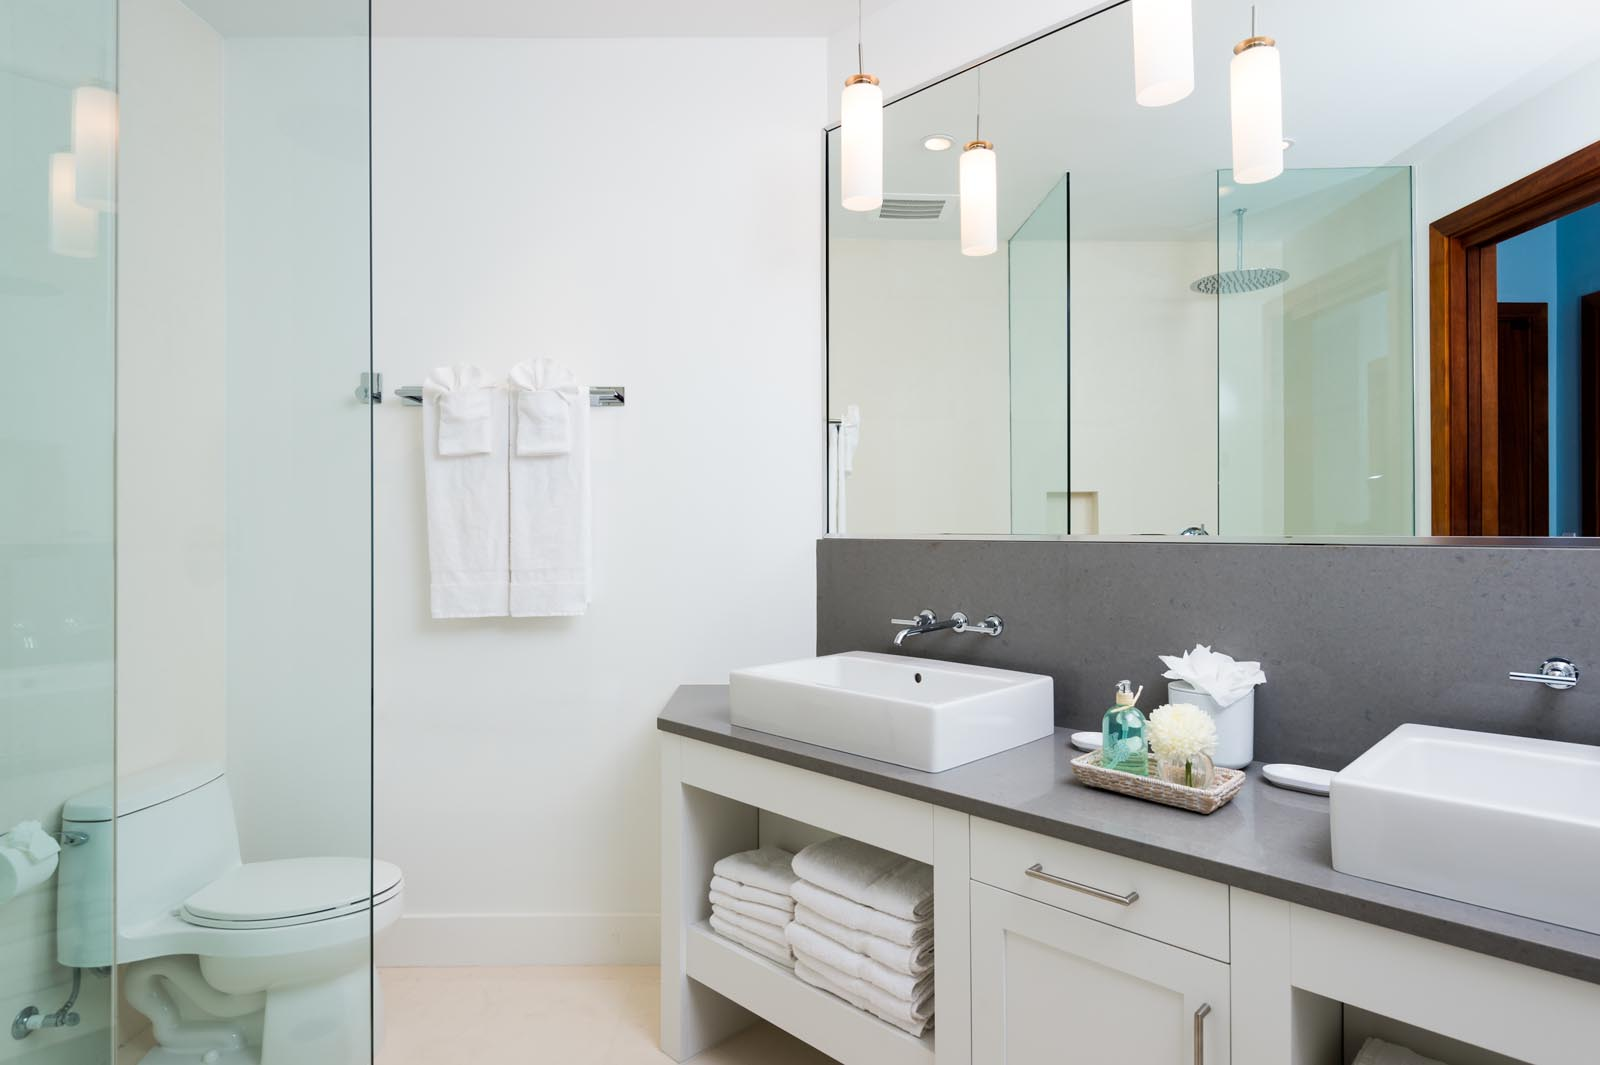 Take a refreshing shower in your private bathroom at Villa Aguaribay, Long Bay Beach, Providenciales (Provo), Turks and Caicos Islands.